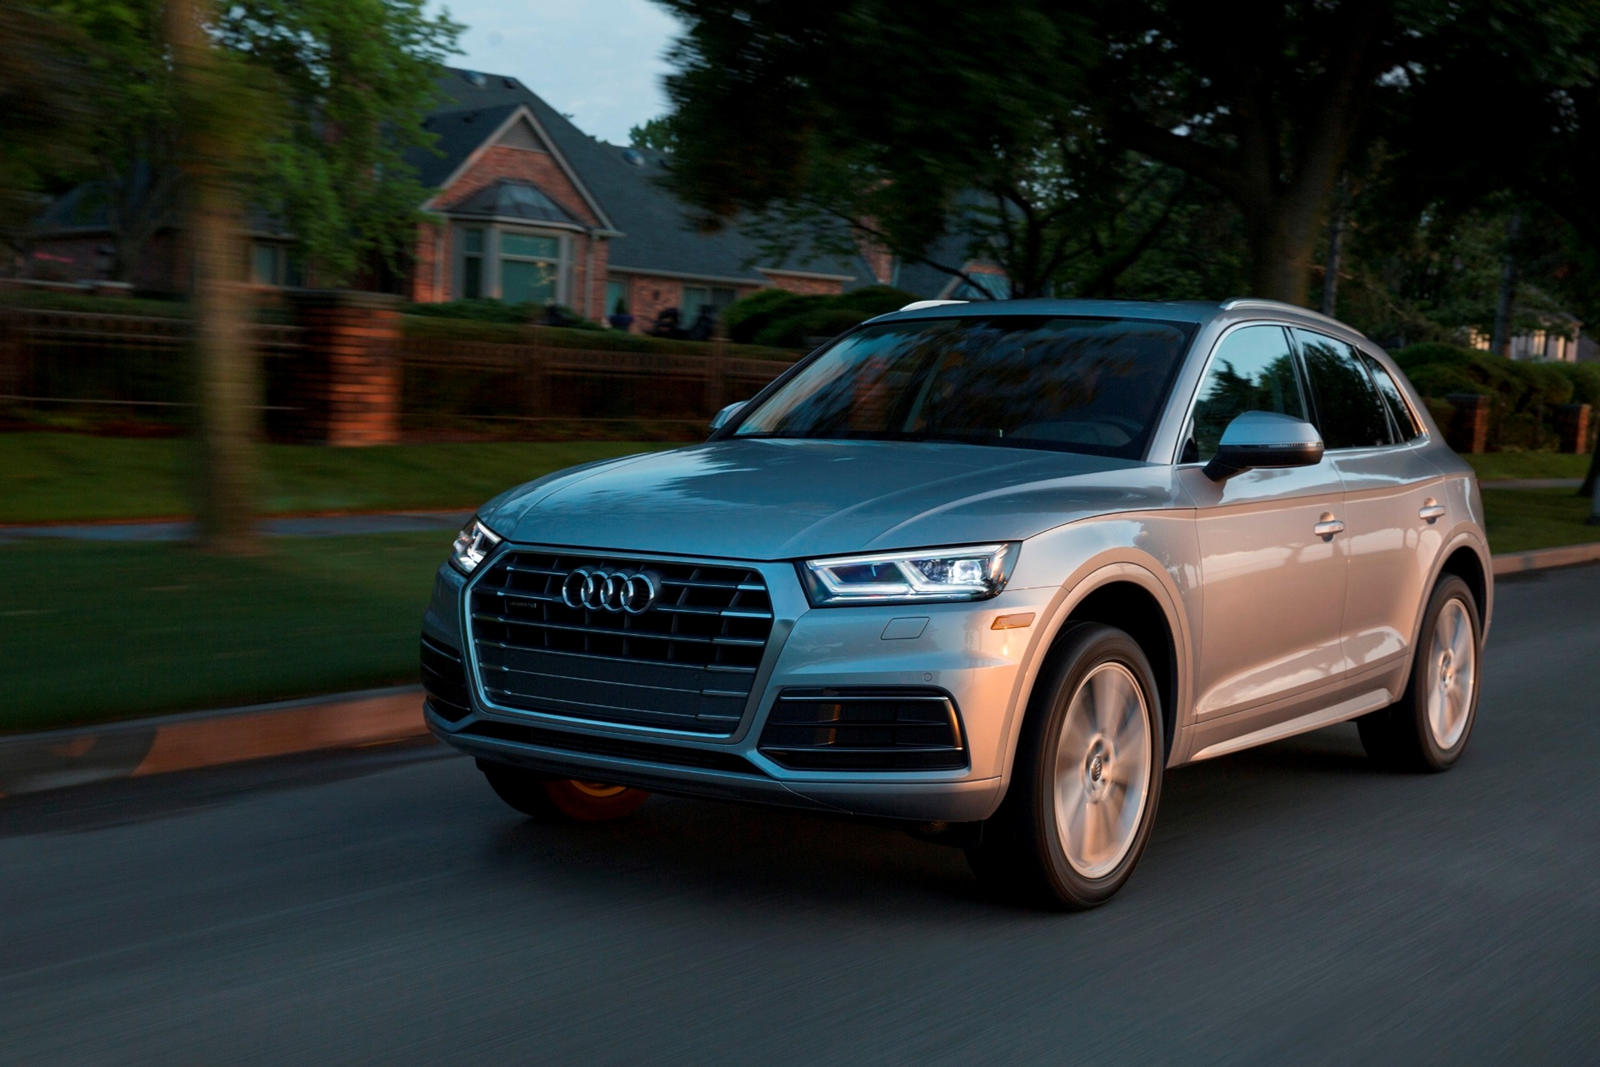 2020 Audi Q5 SUV Front View